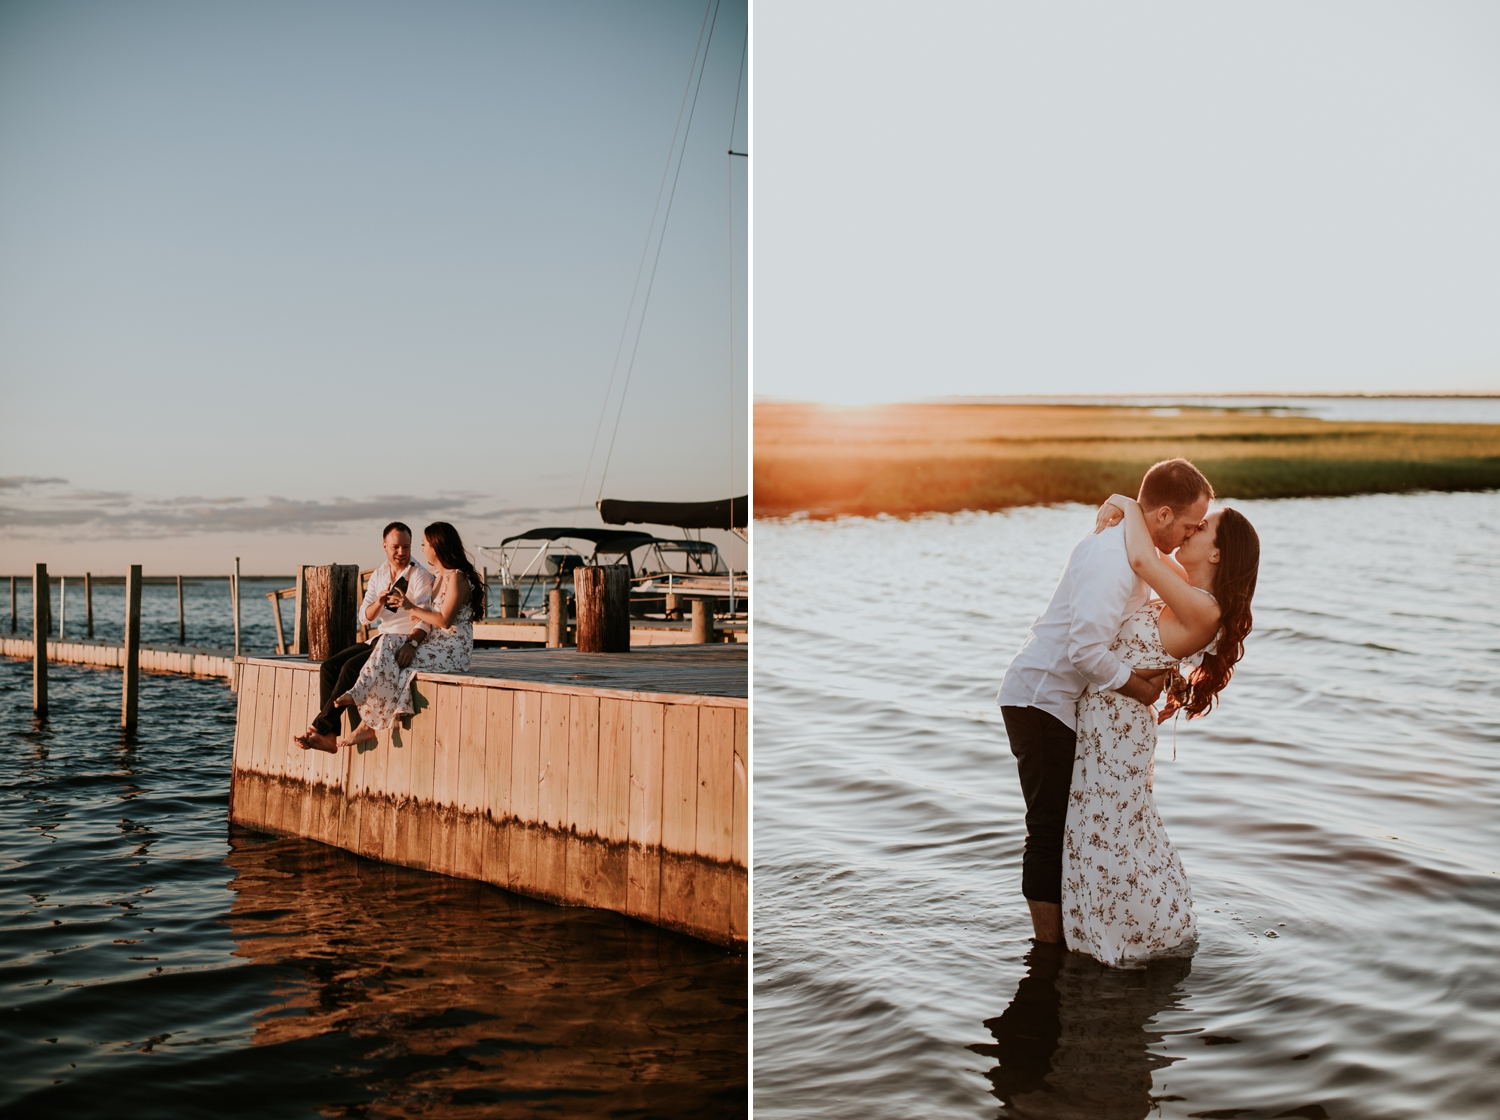 ho-hum-beach-boat-ride-engagement-photography-bellport-new-york 33.jpg